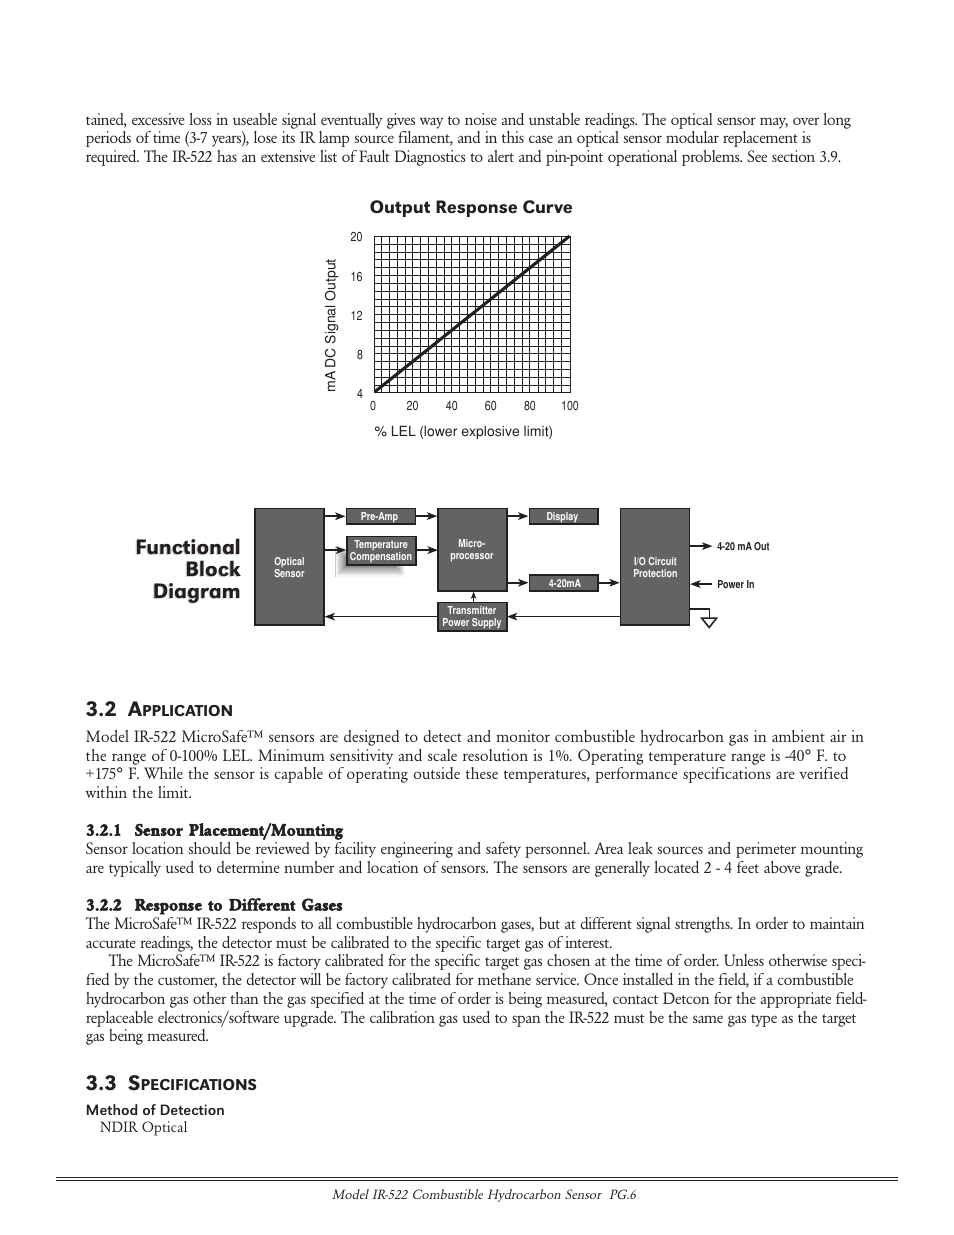 hight resolution of functional block diagram functional block diagram detcon ir 522 user manual page 6